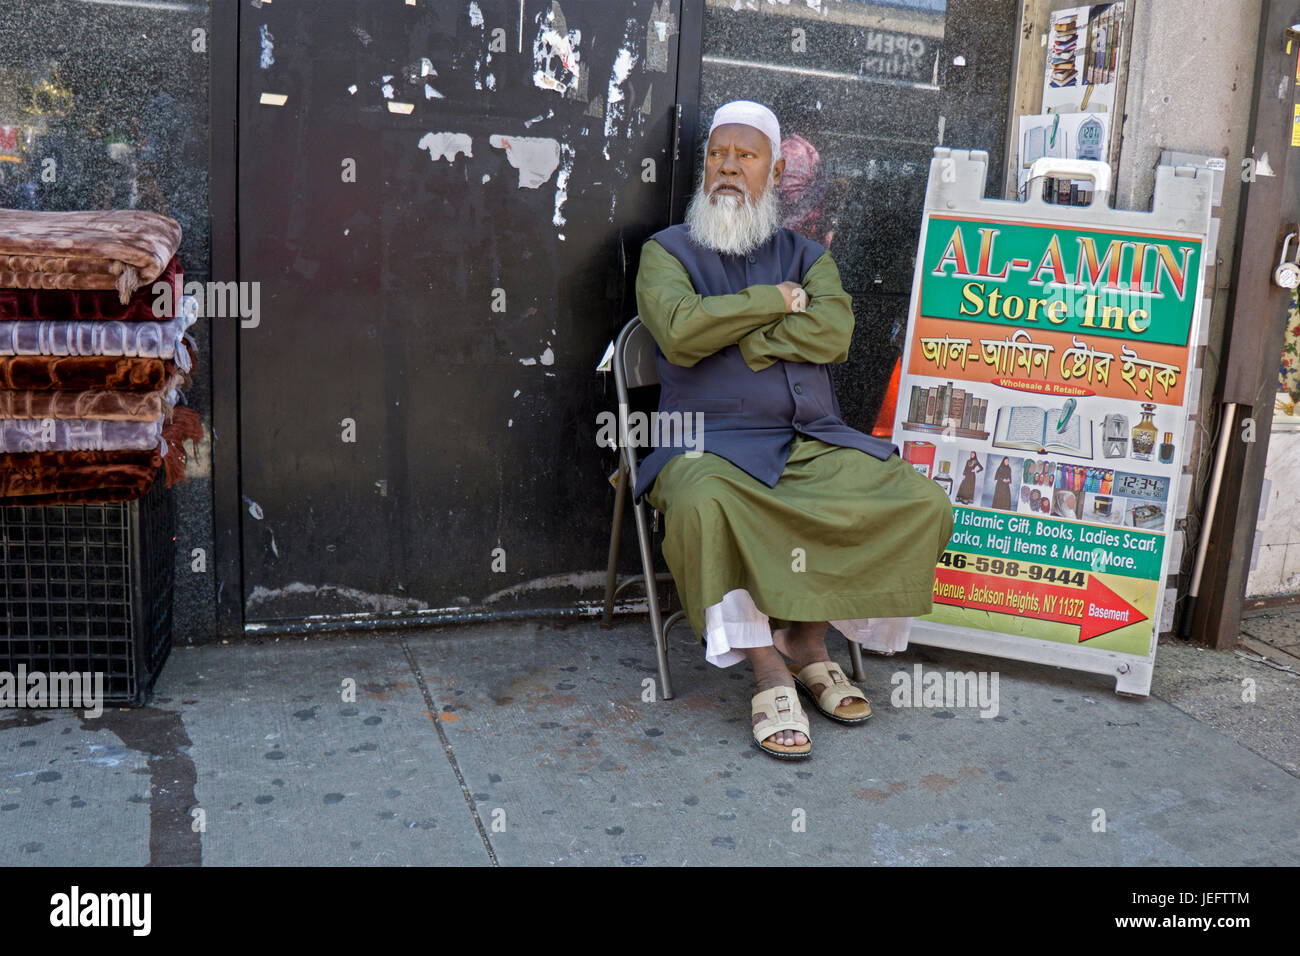 An older Islamic merchant rests while watching his stand on 37th Avenue in Jackson Heights, Queens, New York Stock Photo